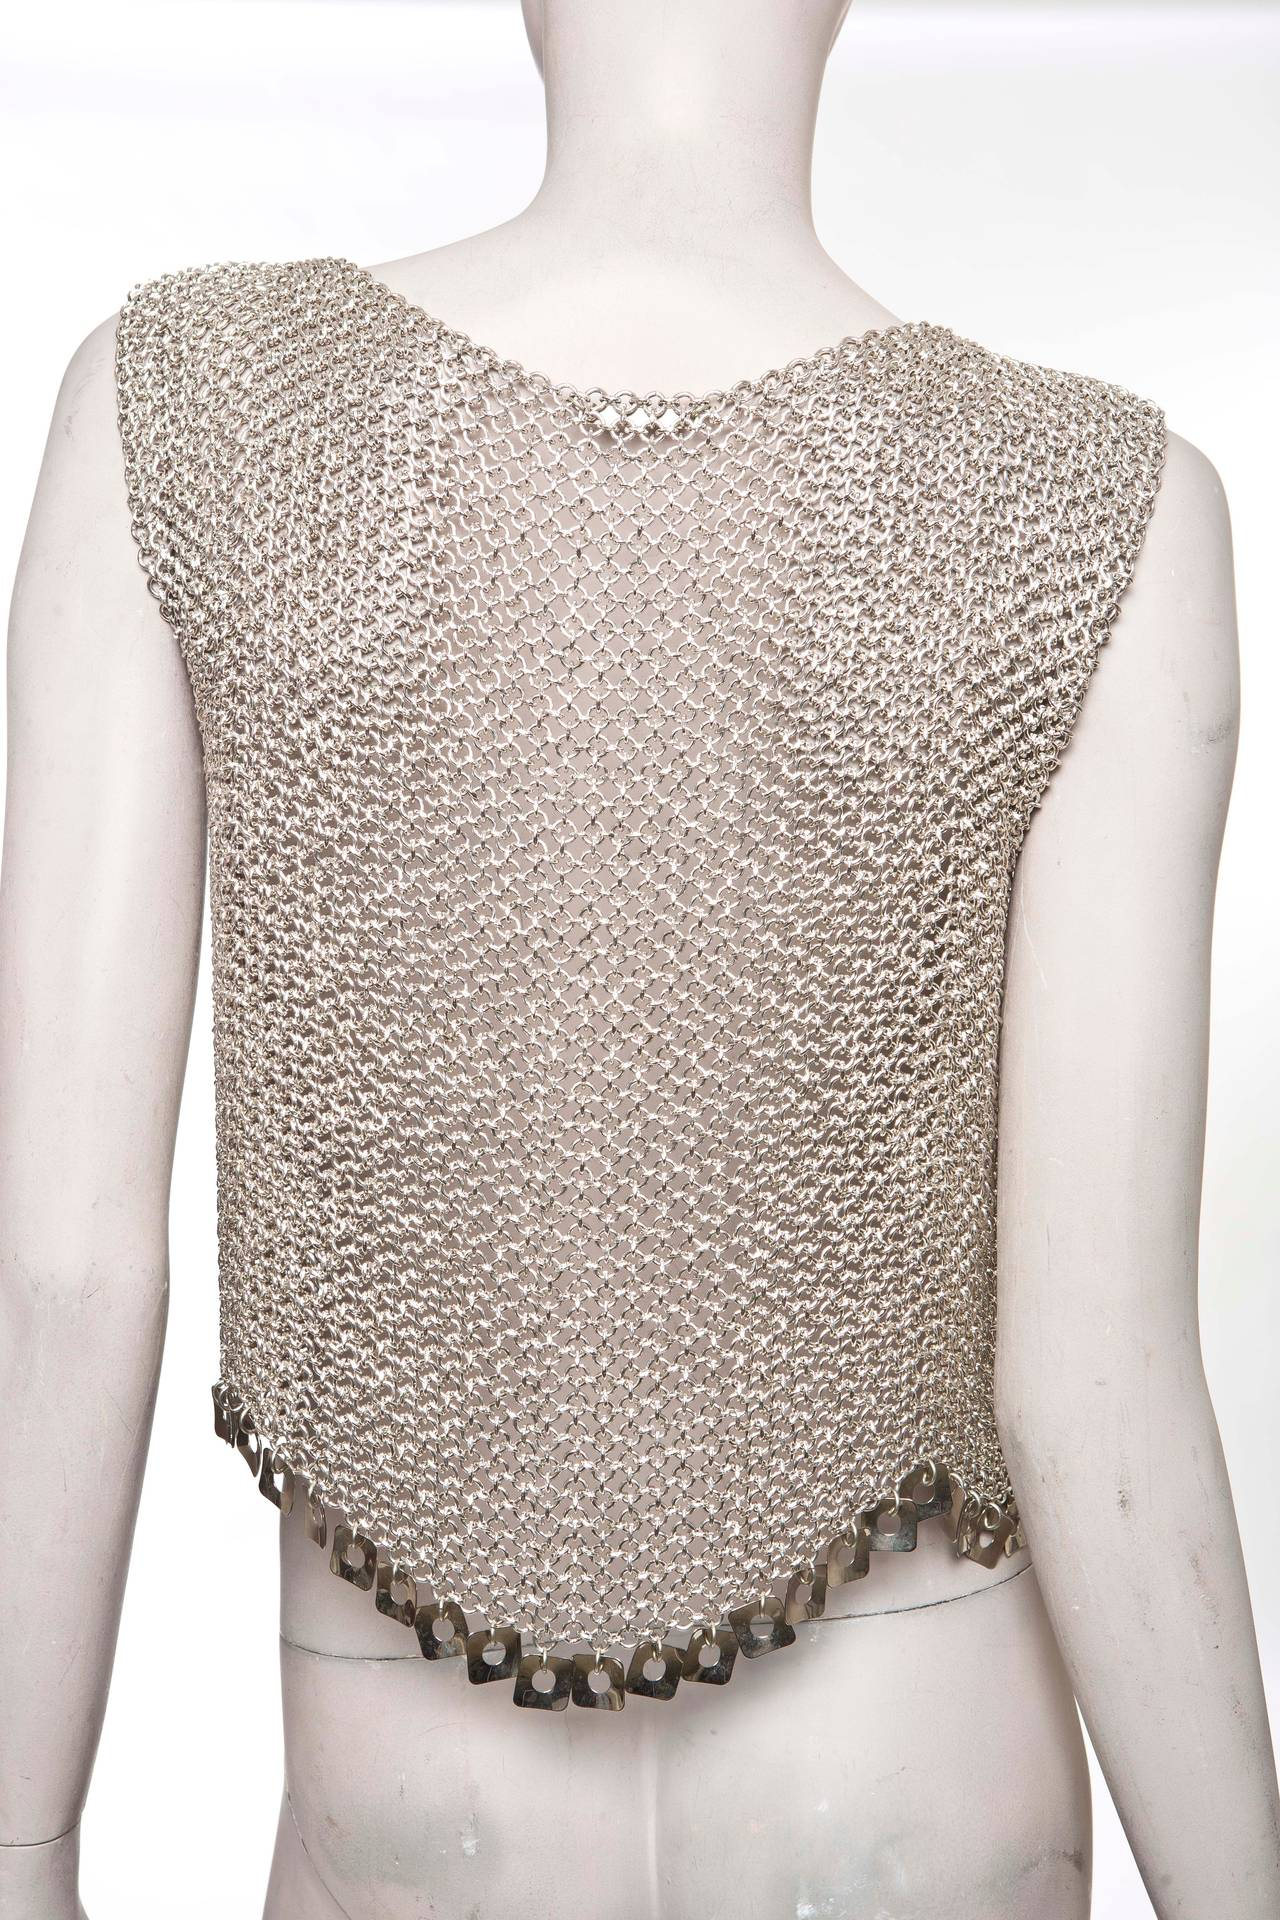 Gray Paco Rabanne Chain Mail Top, Circa 1970's For Sale